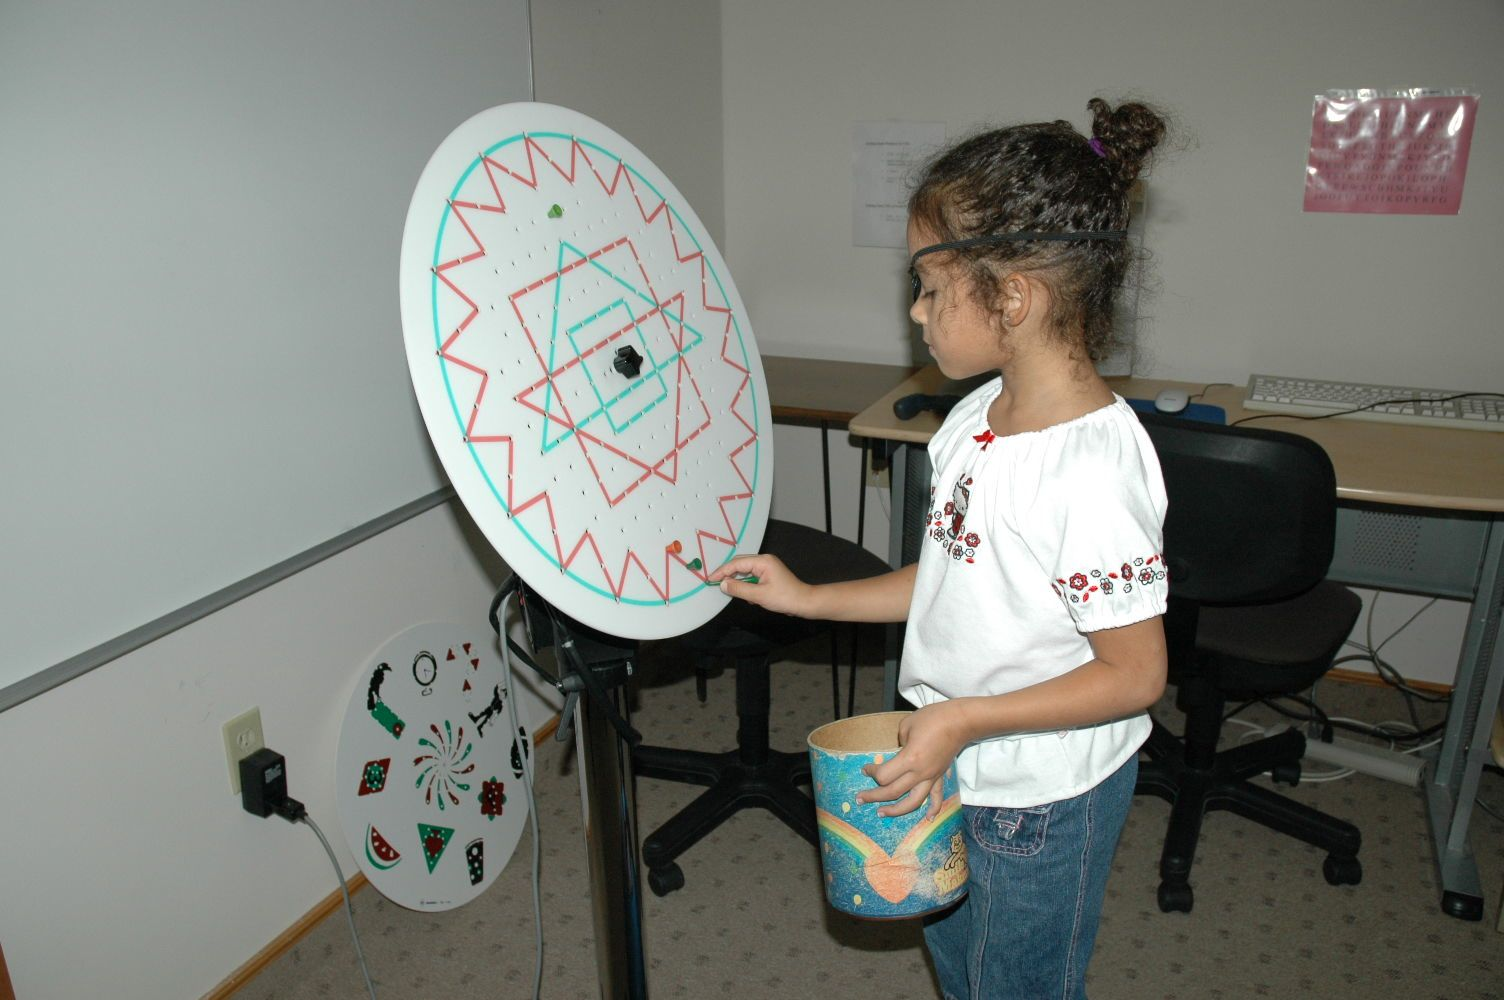 Vision Therapy Activities With Summary Descriptions